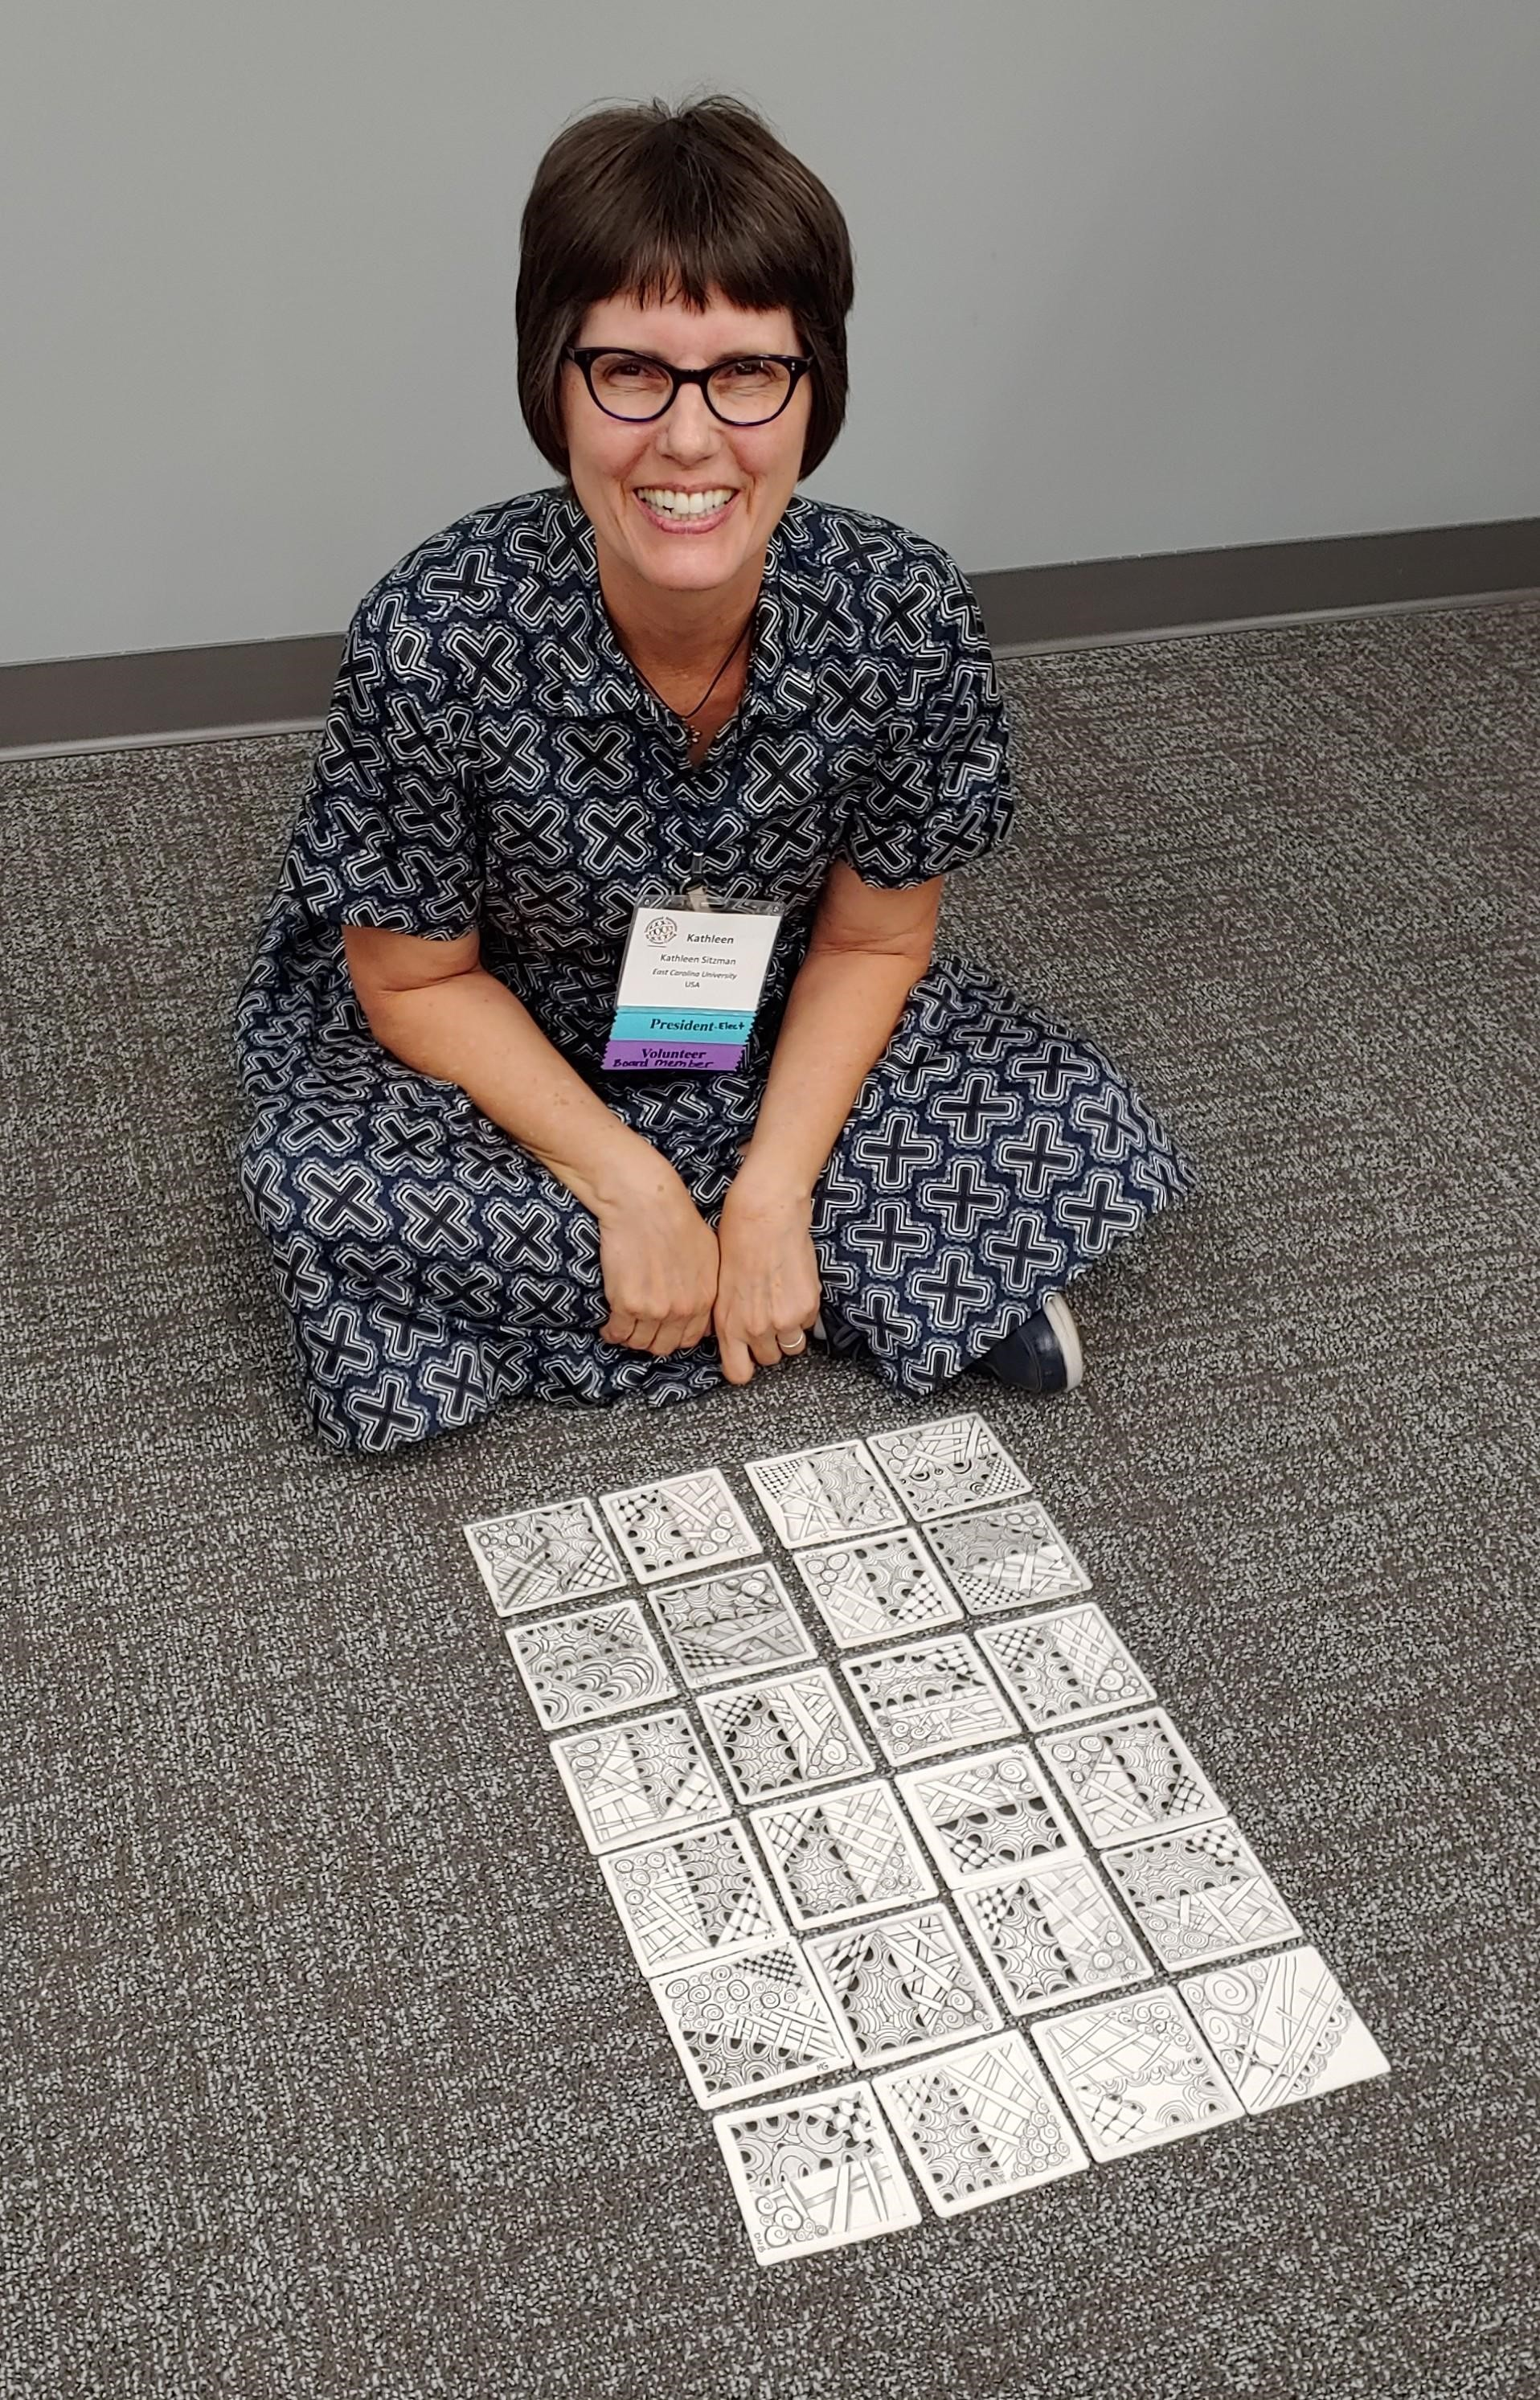 Here is a photo of me at the 2019  International Association for Human Caring Conference in Greenville, South Carolina. I am in the middle of teaching a  Zentangle Class! The tiles have been created by each of my students in the class. They all received the same instructions, but each tile is as unique as the person who created it.  This is a good visual representation of how groups of people process information. They may receive the same input, but as you can see, the output is highly varied. It is important to remember this when teaching and working with all kinds of groups.